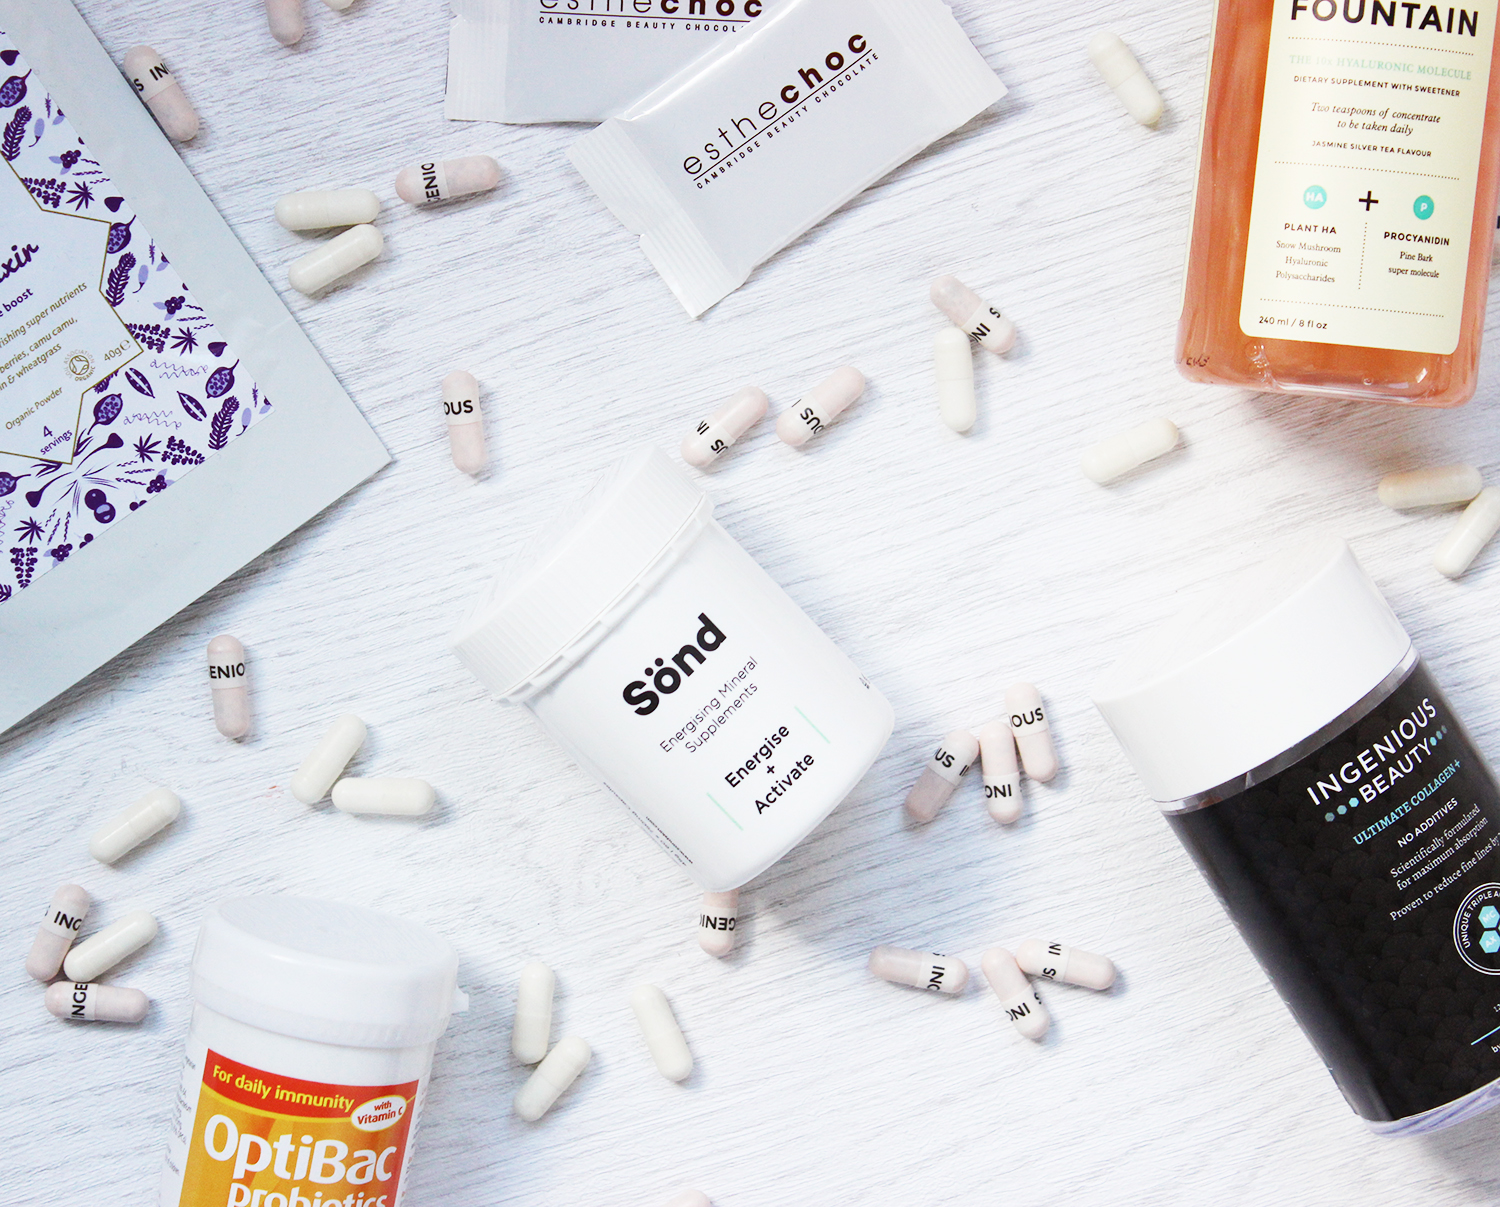 Beauty from within - supplements for healthier skin